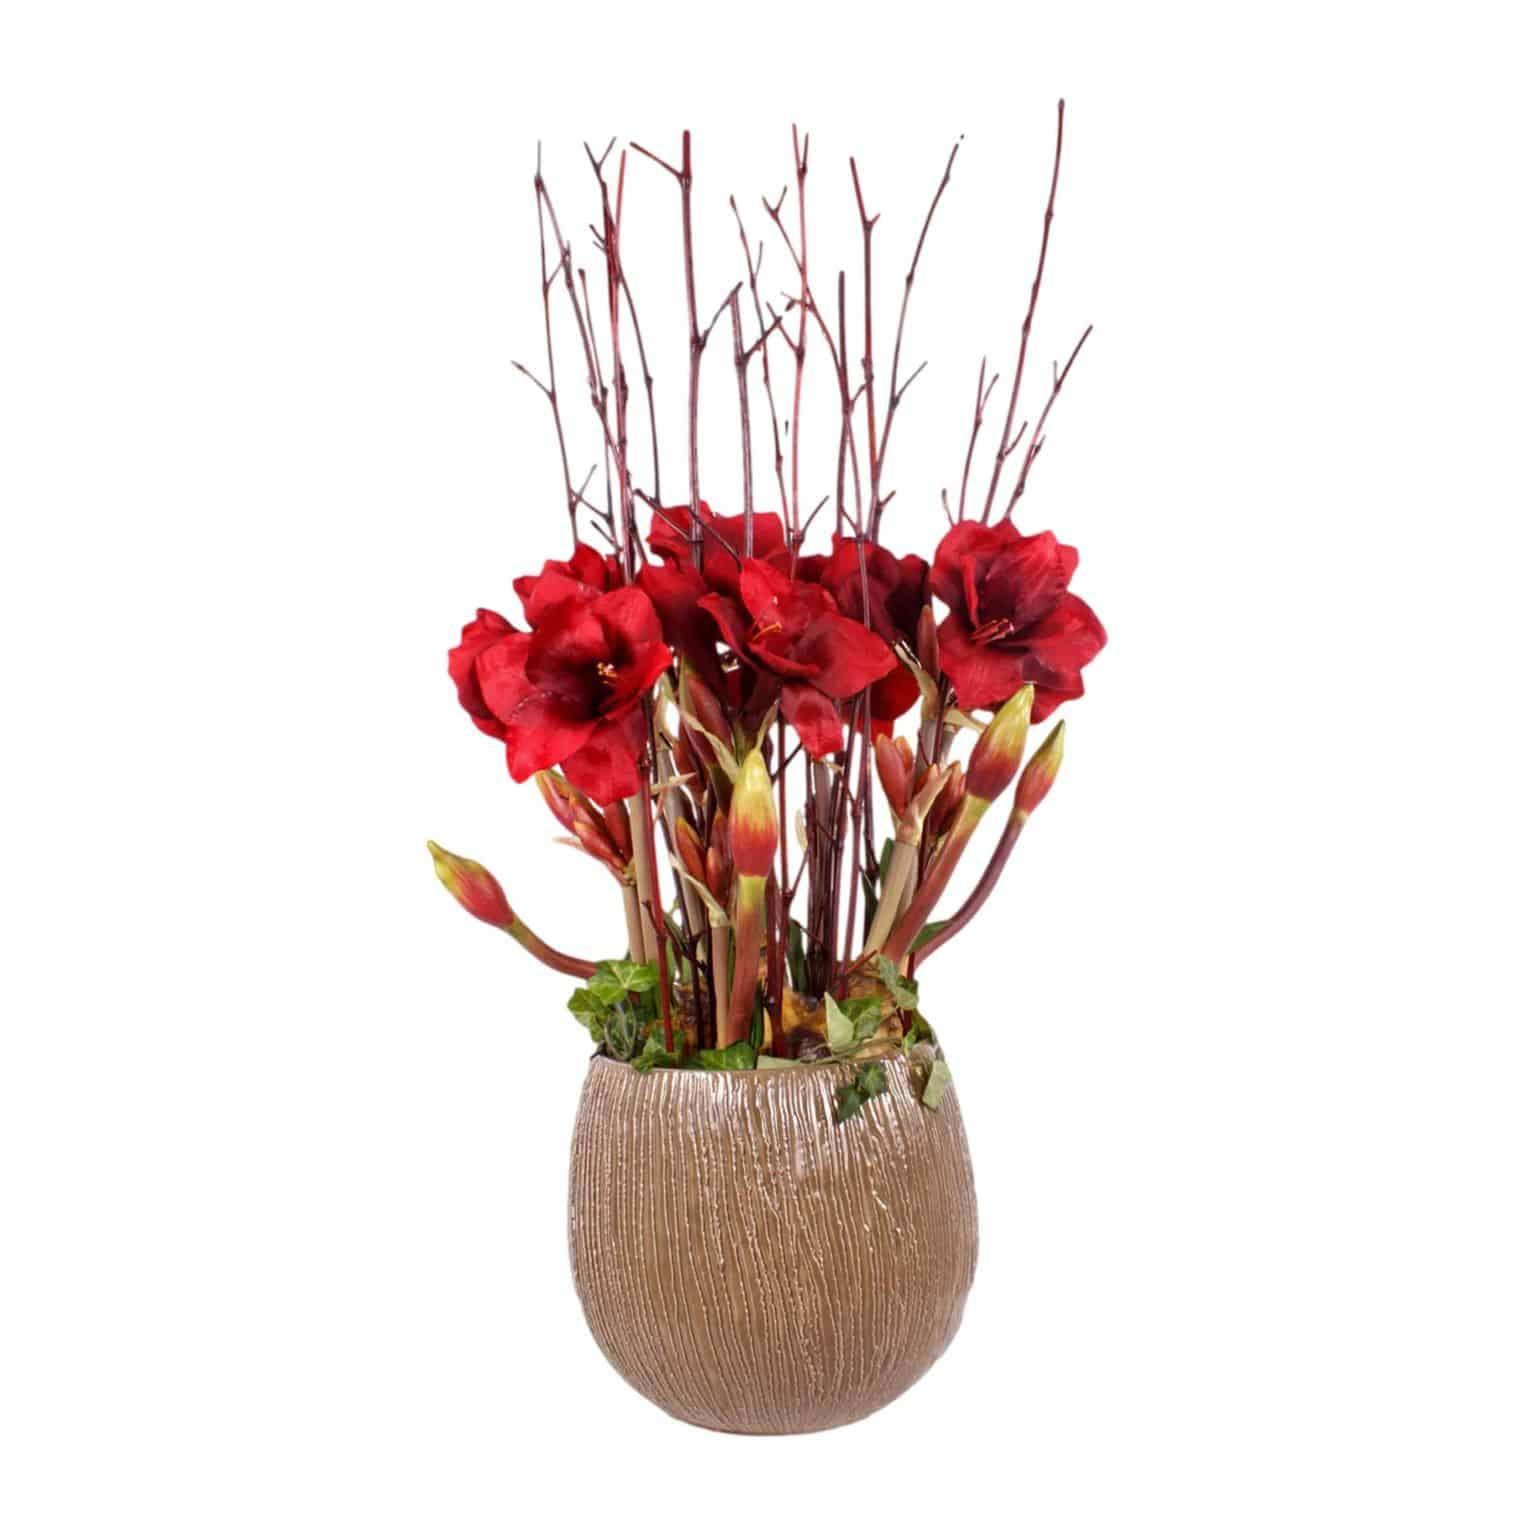 Buy our deep red artificial amaryllis bulb arrangement. Realistic in colour and texture with lifelike pollen